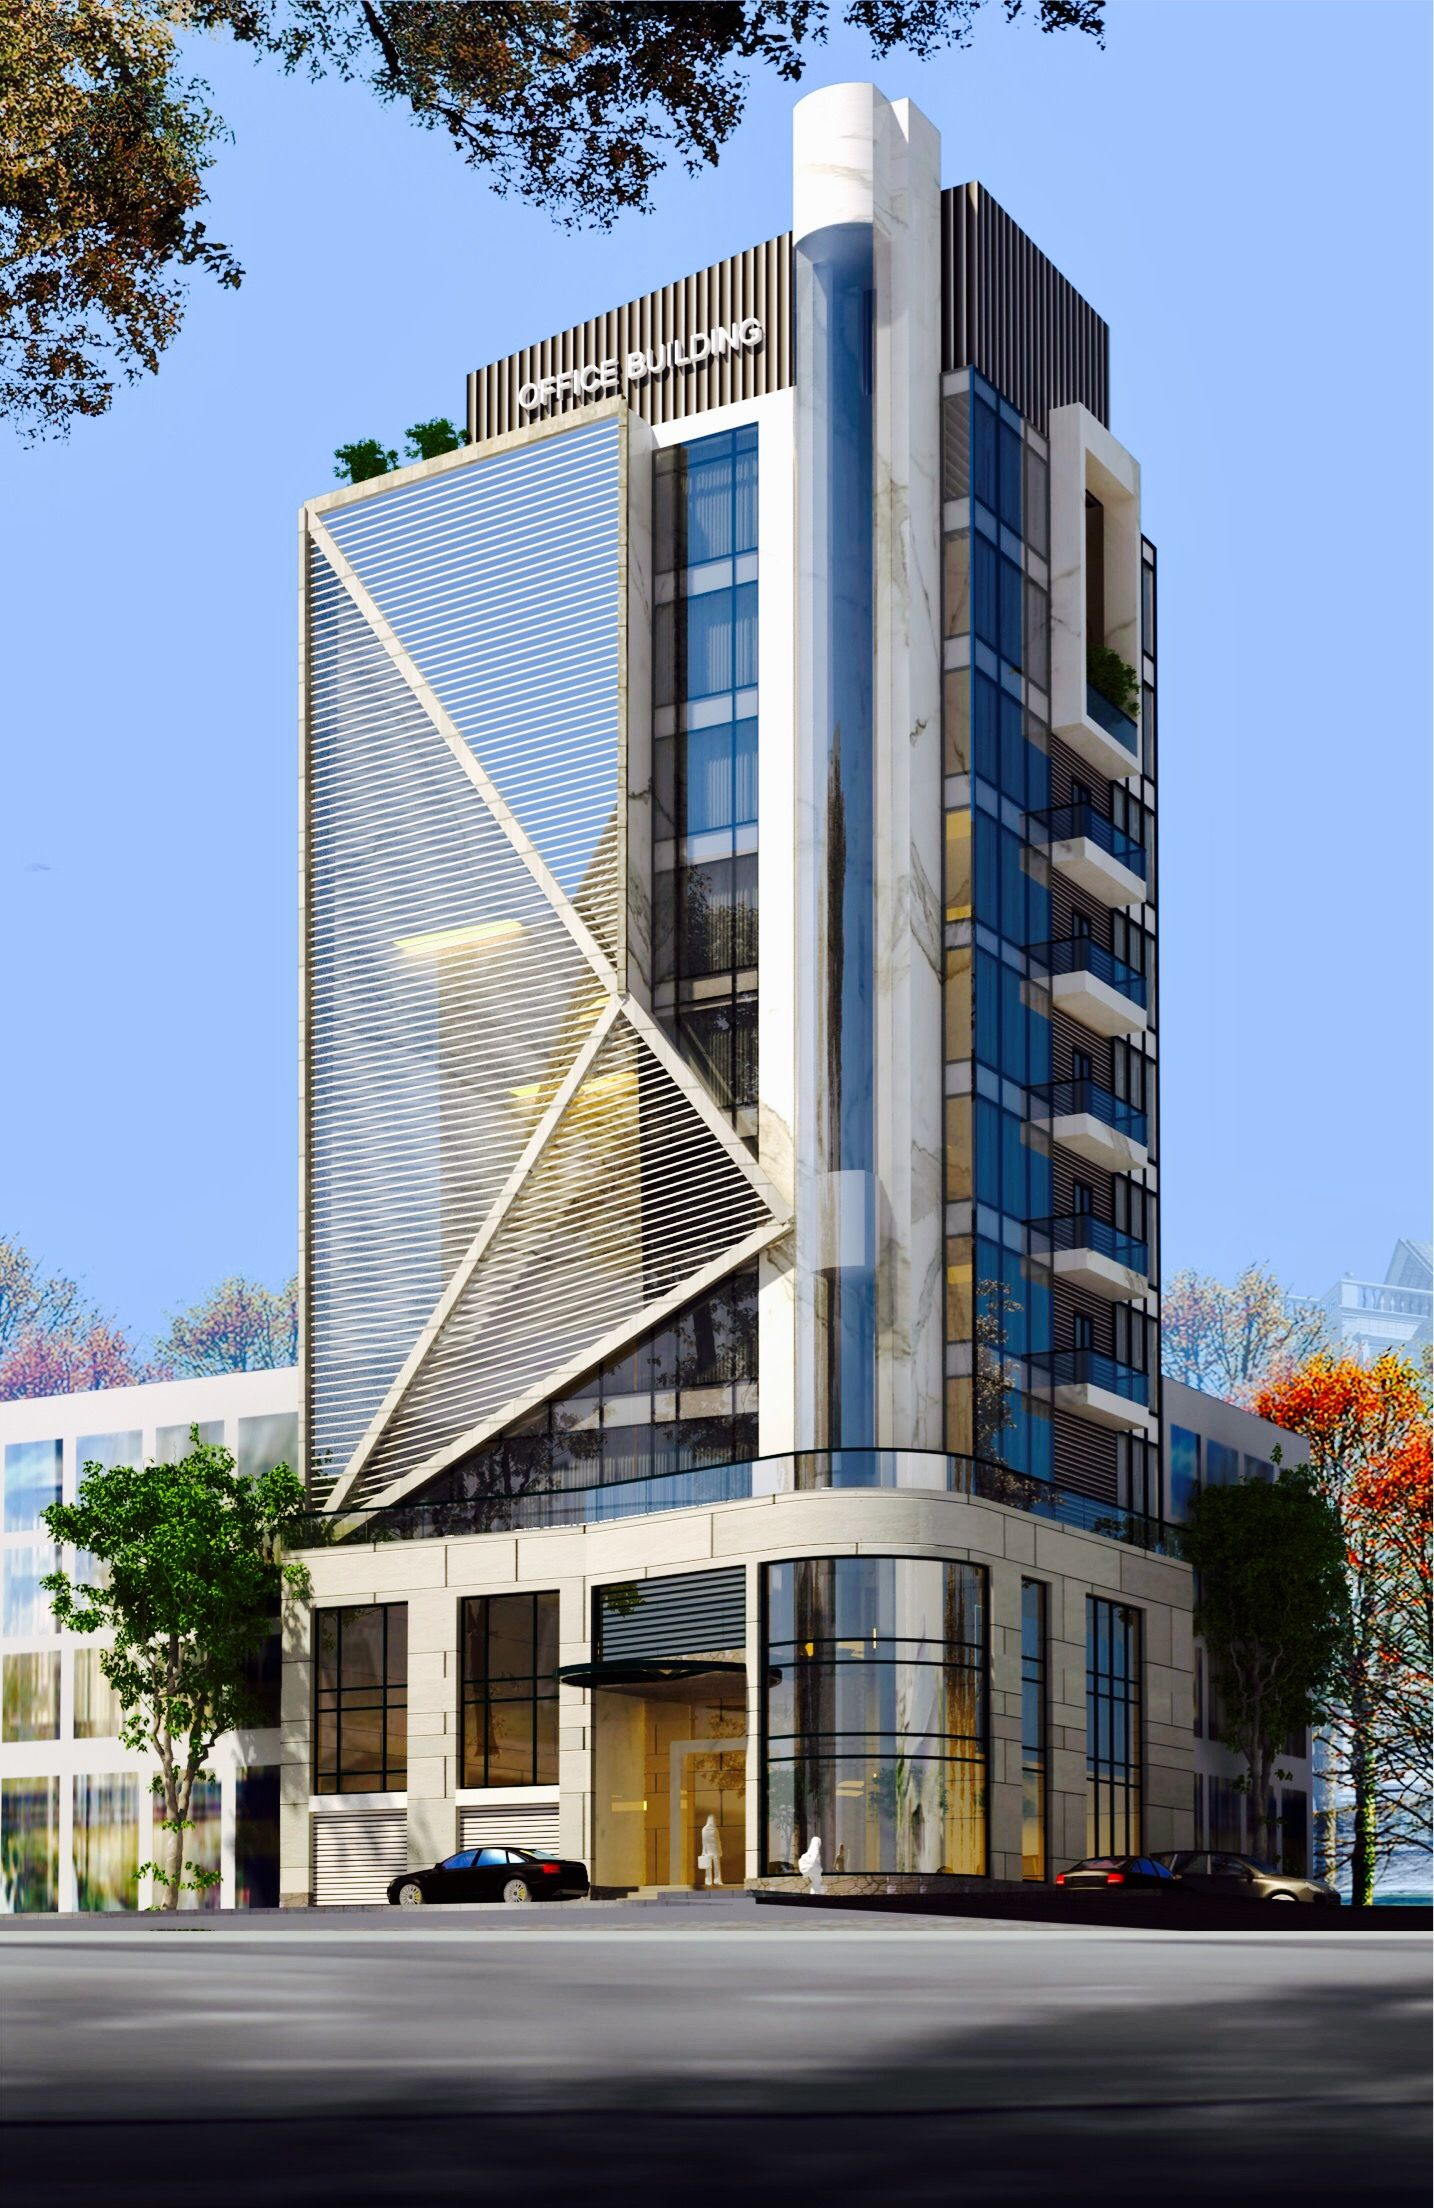 Office Mau Nha Facade Architecture Building